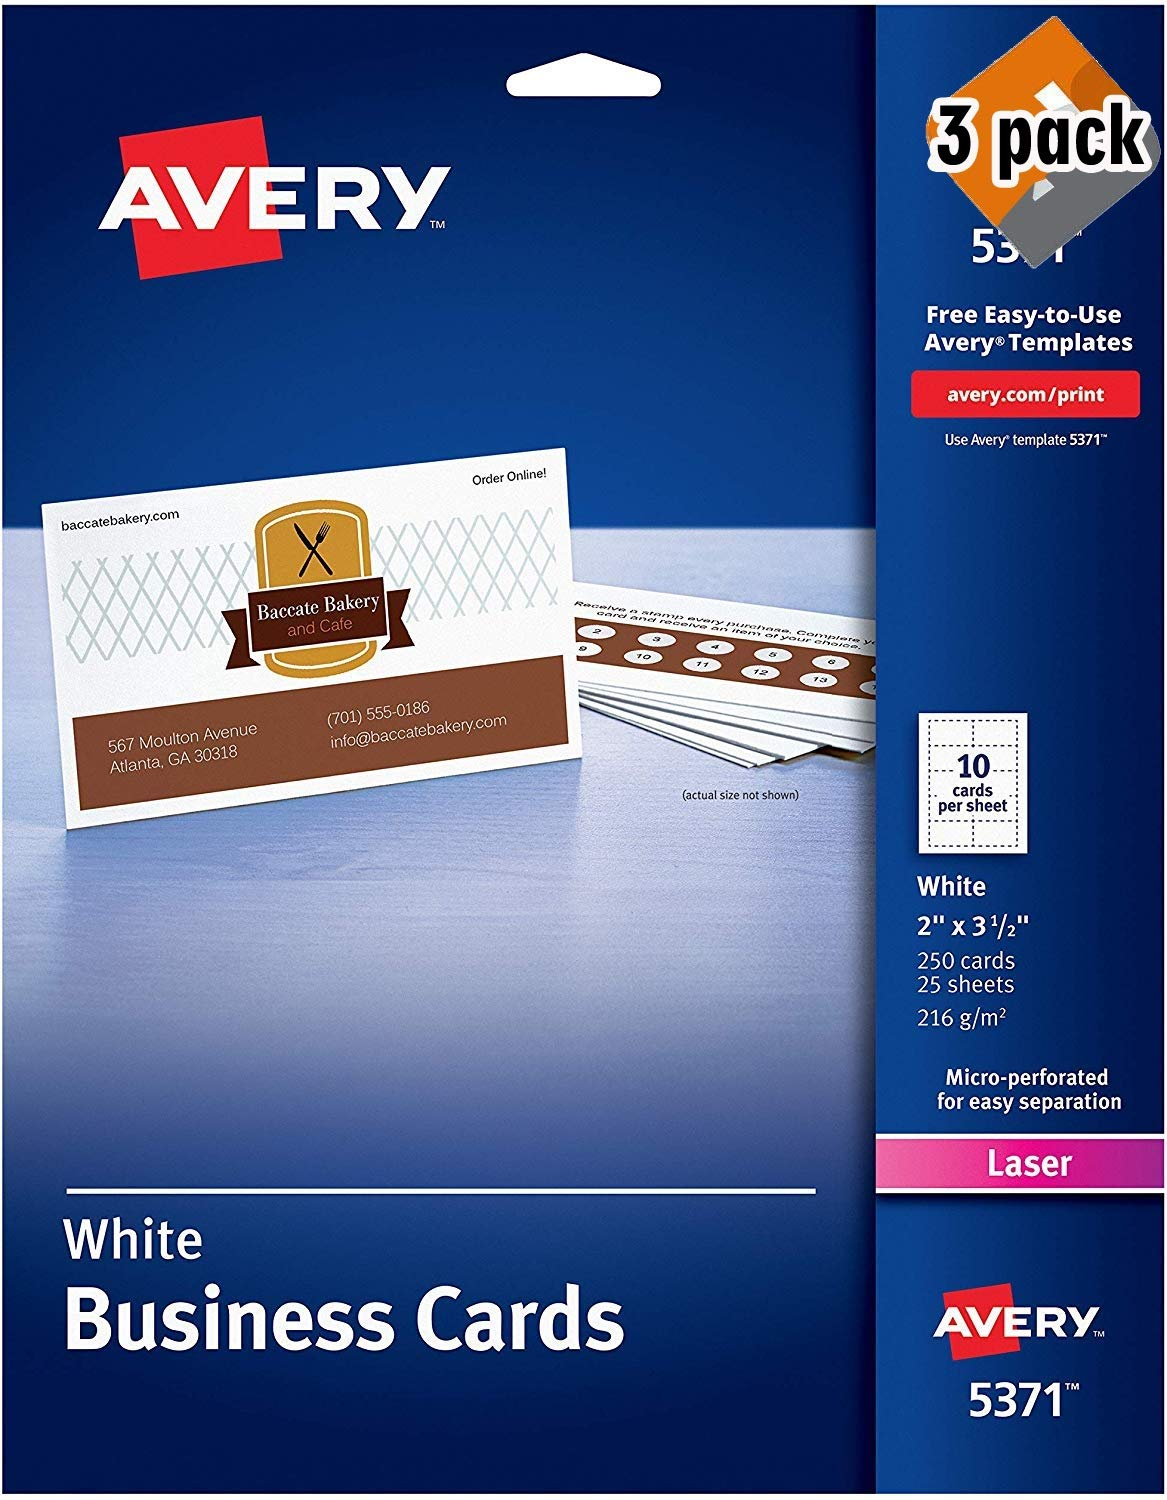 Avery Printable Business Cards, Laser Printers, 250 Cards, 2 x 3.5 (5371), 3 Pack by AVERY